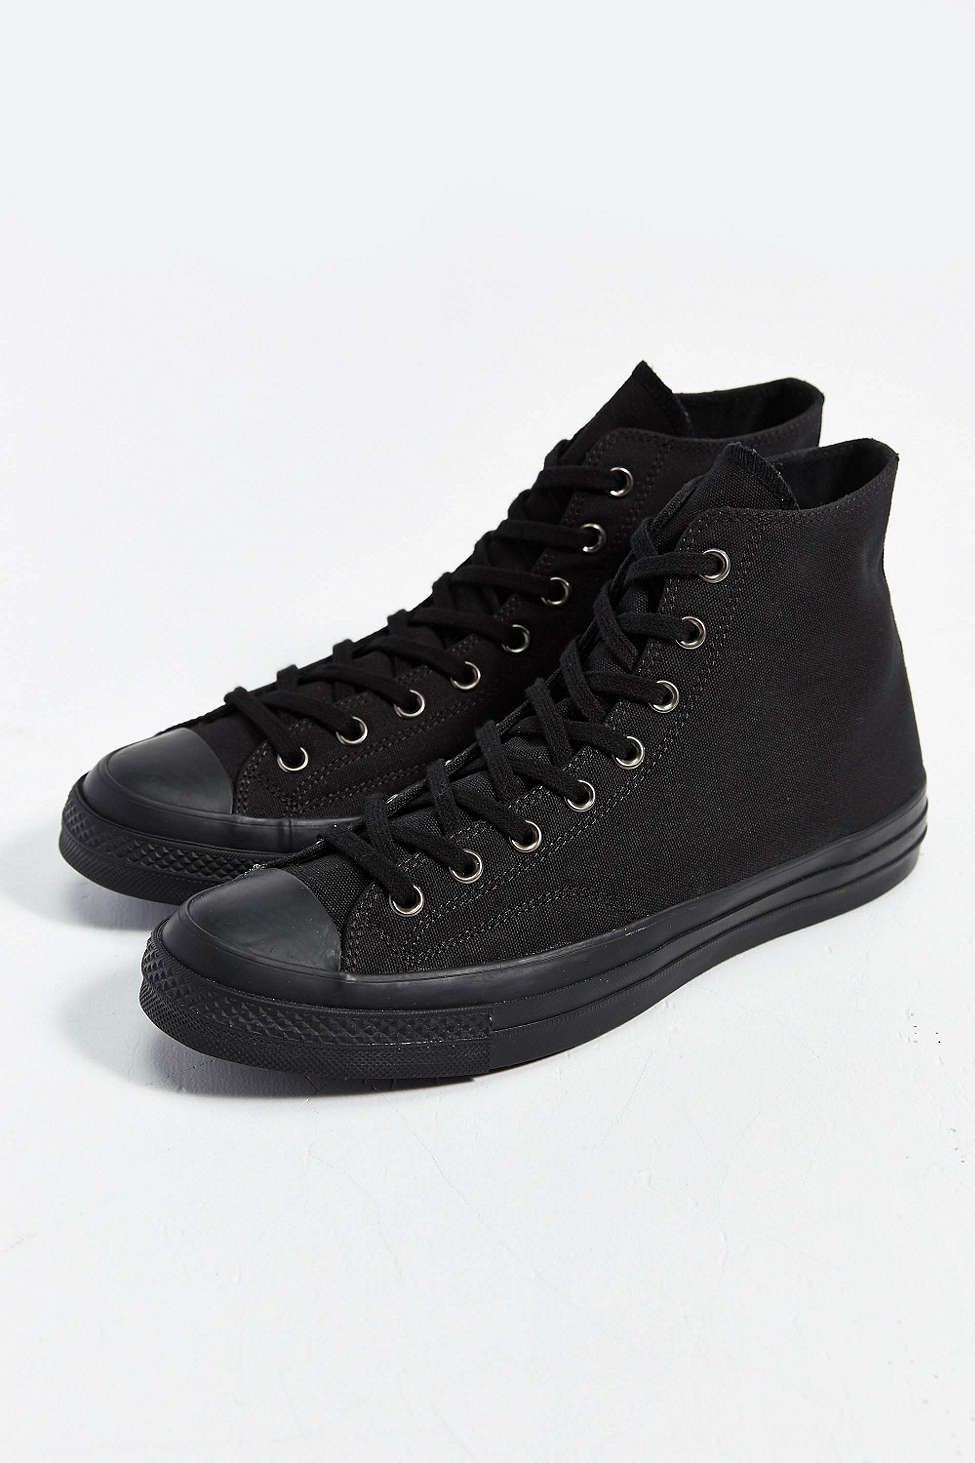 45592e9aae1a87 Converse Chuck Taylor All Star 70s Mono High-Top Sneaker in 2019 ...